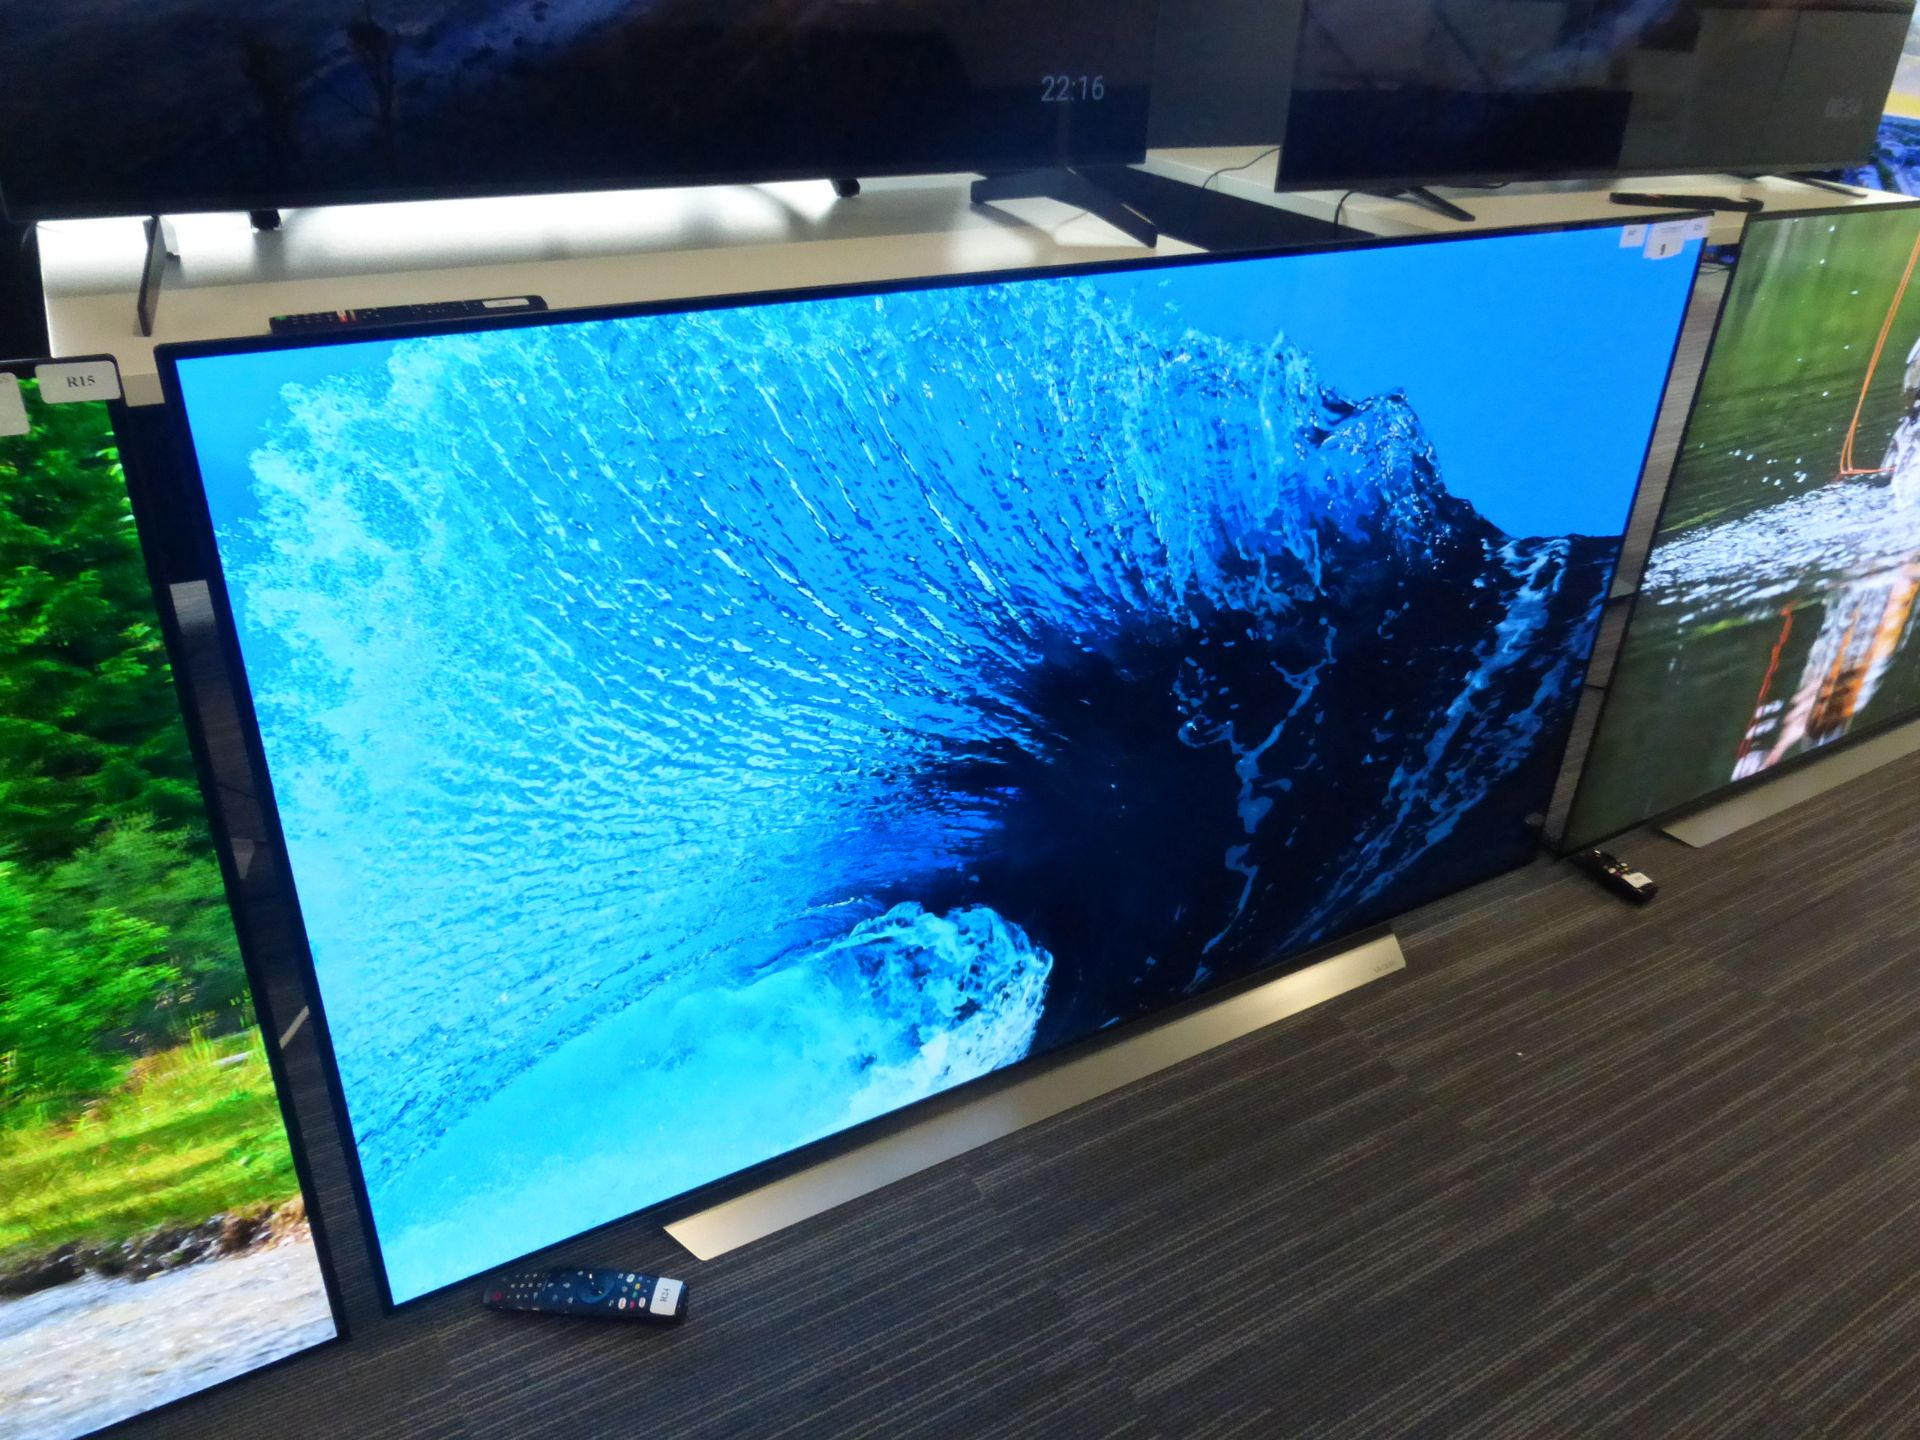 LG 65'' 4K OLED TV Model: OLED65CX5LB, includes remote (R24) and box (B47) Screen has no visible